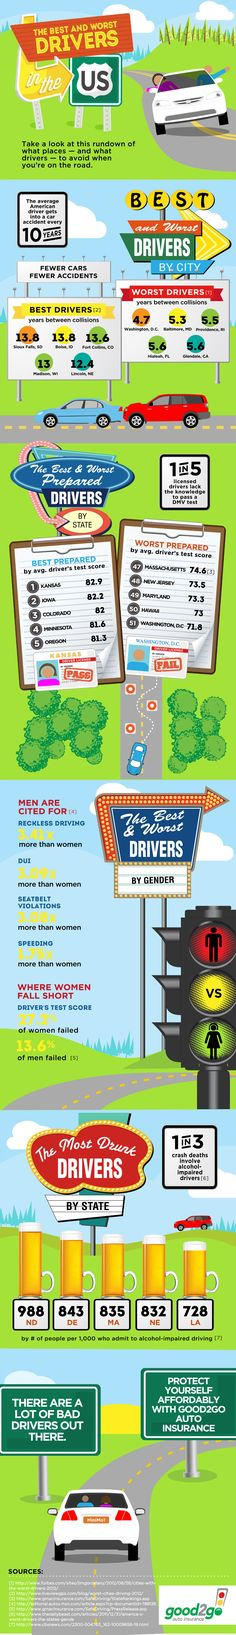 The Best and Worst Drivers in the US - Infographic